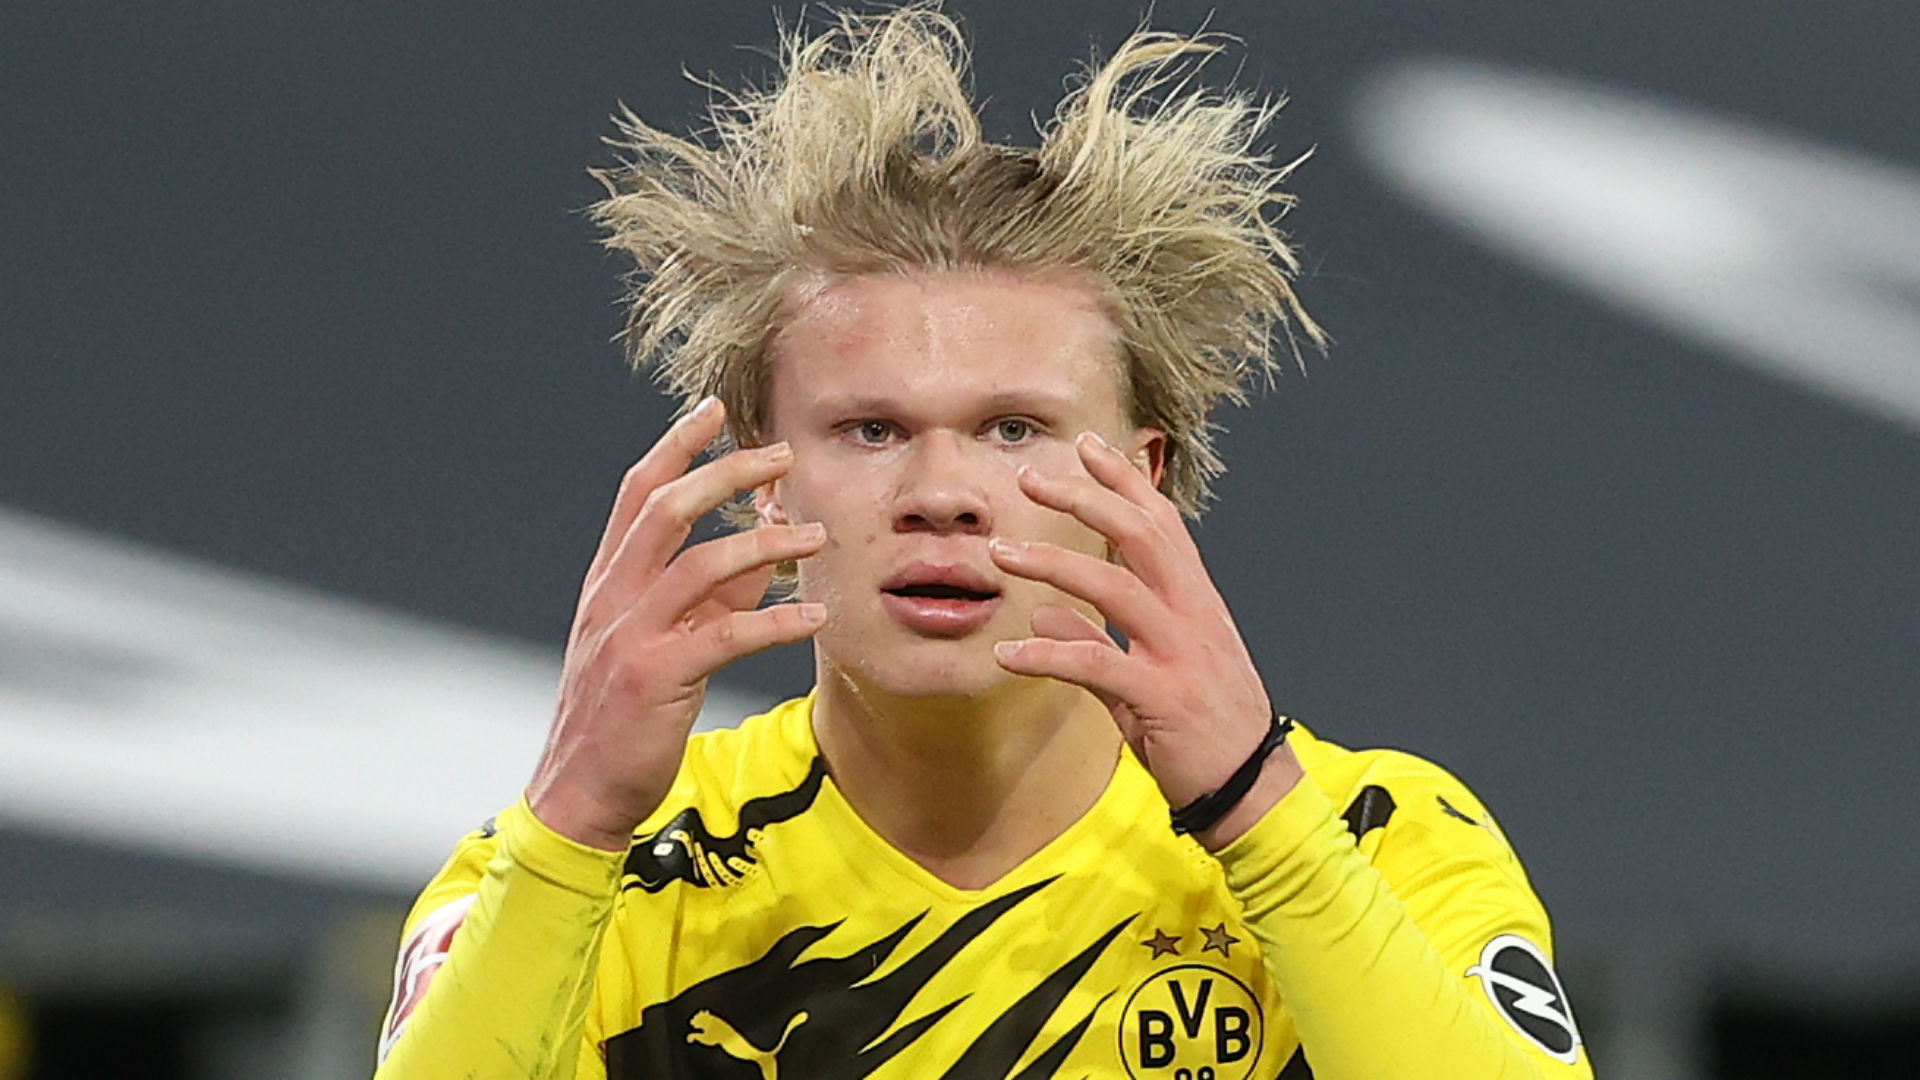 Dortmund have made it clear they do not want to sell Haaland – Raiola